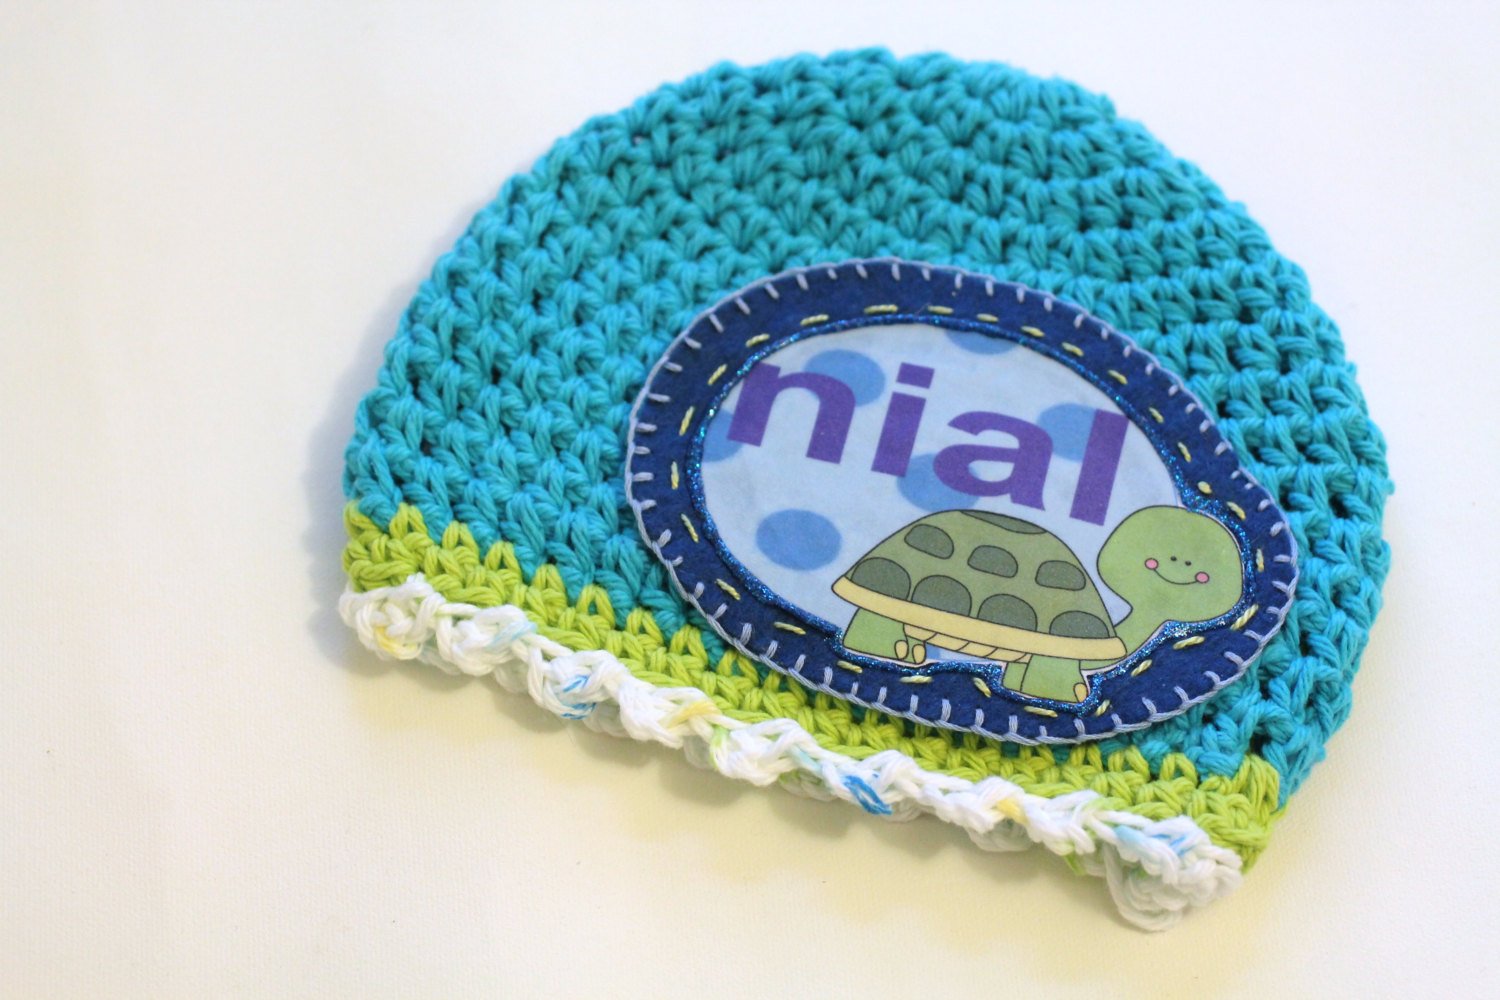 515cc84d5 Baby Beanie, Personalized Baby Hat, Baby Gift, Turquoise Summer Baby Turtle  Personalized Baby Beanie, 100% Cotton Hand Crochet With Your Name